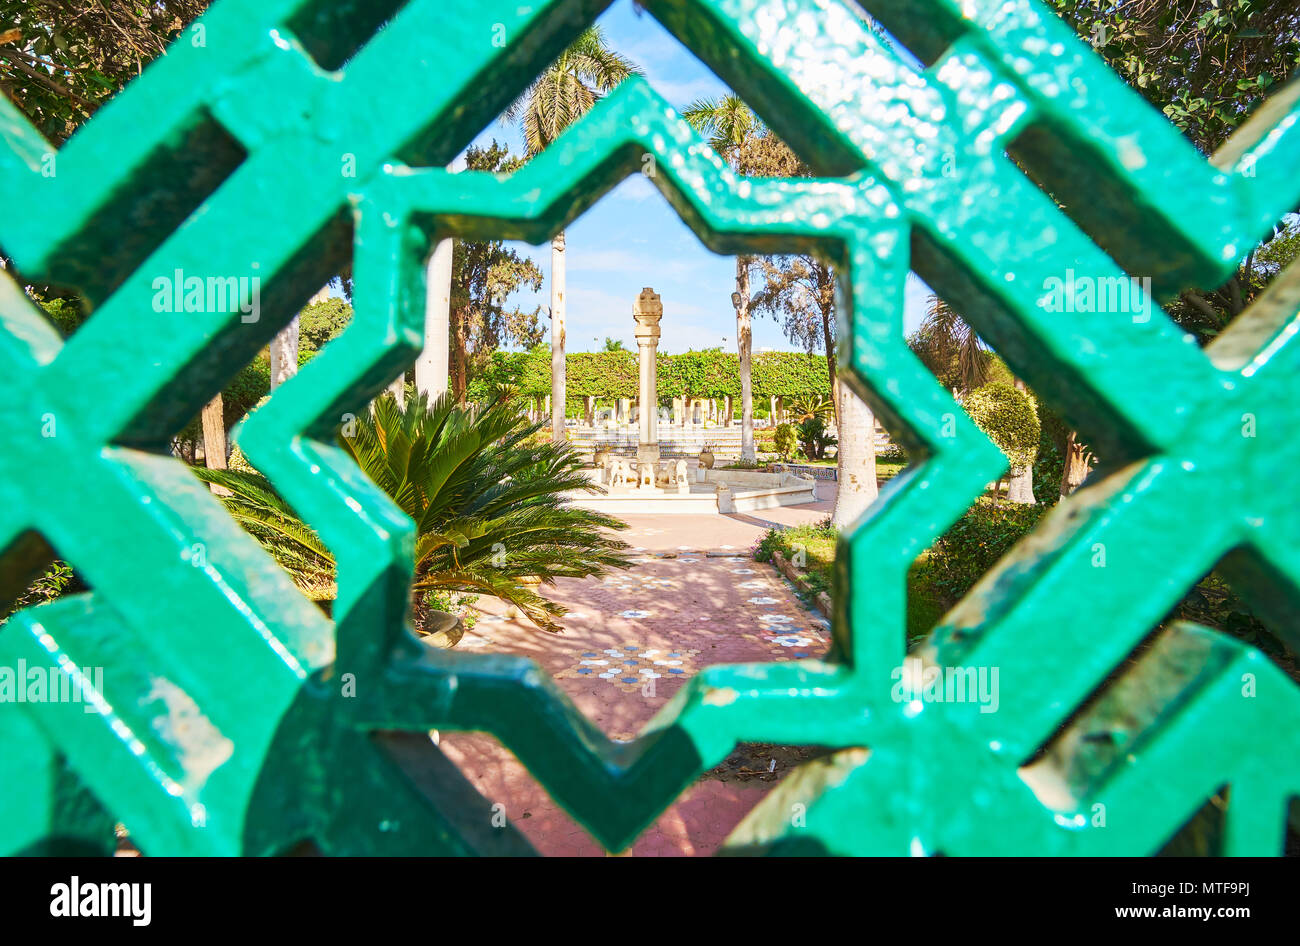 The view on Andalusian Garden through the octagonal Arabian star - Rub el Hizb (Muslim symbol) of the fence, Gezira Island, Cairo, Egypt. - Stock Image